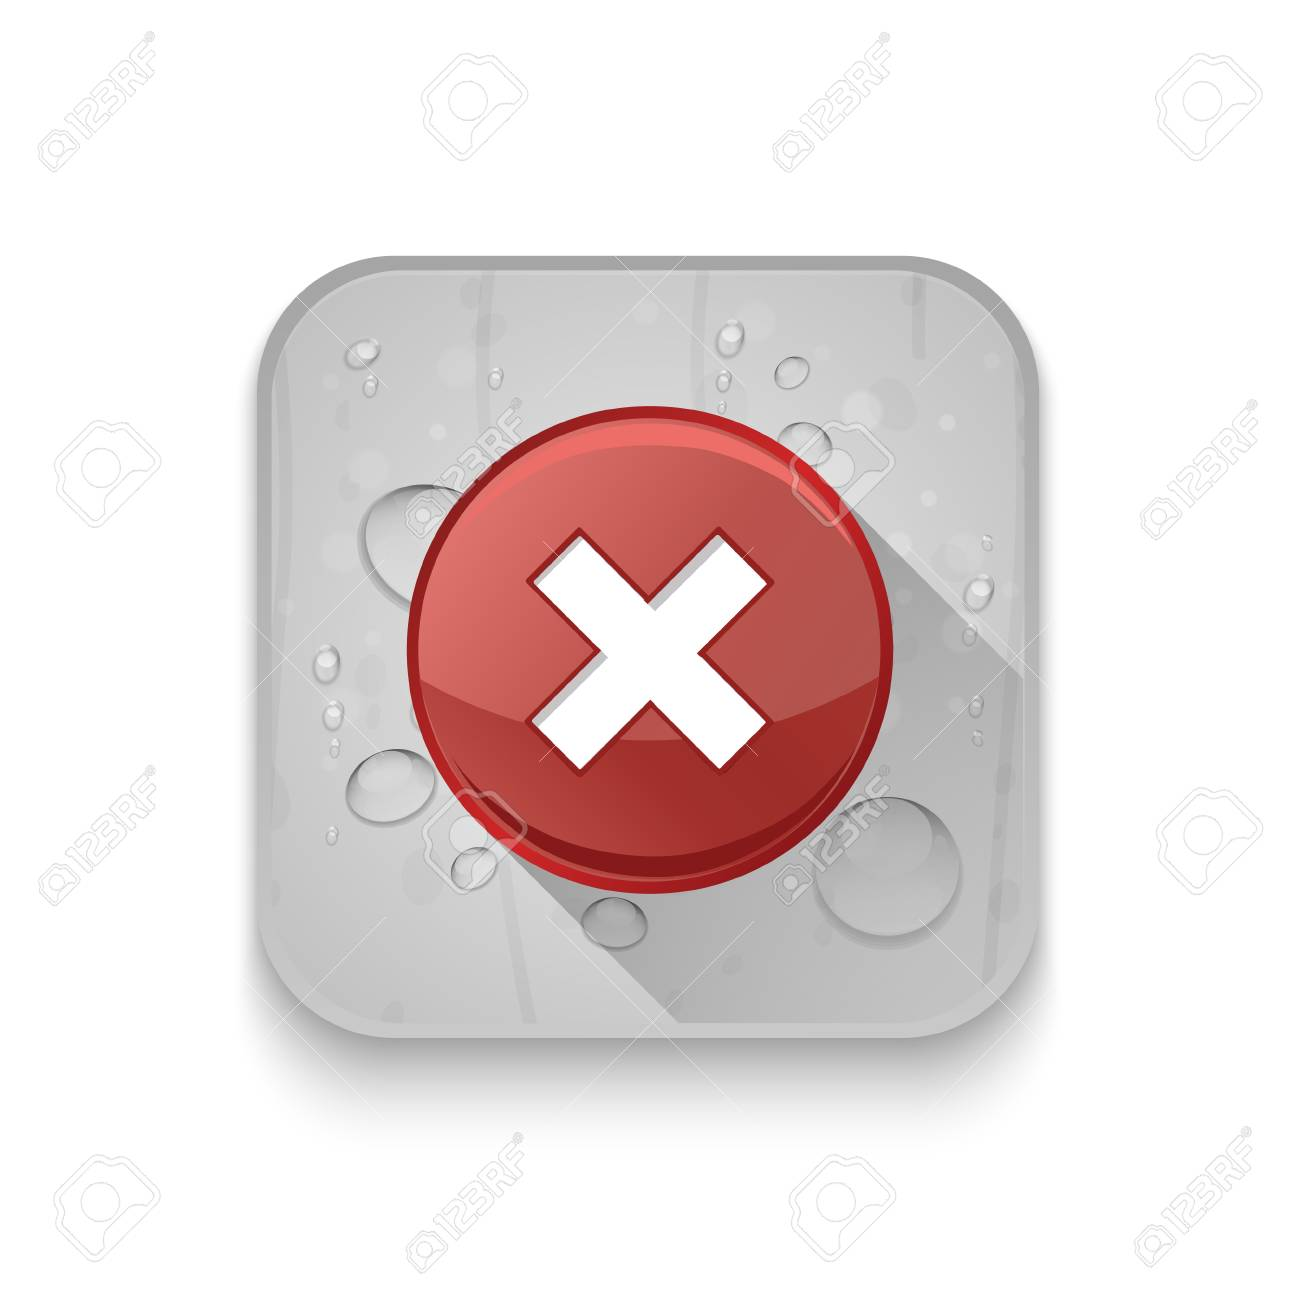 delete remove icon With long shadow over app button